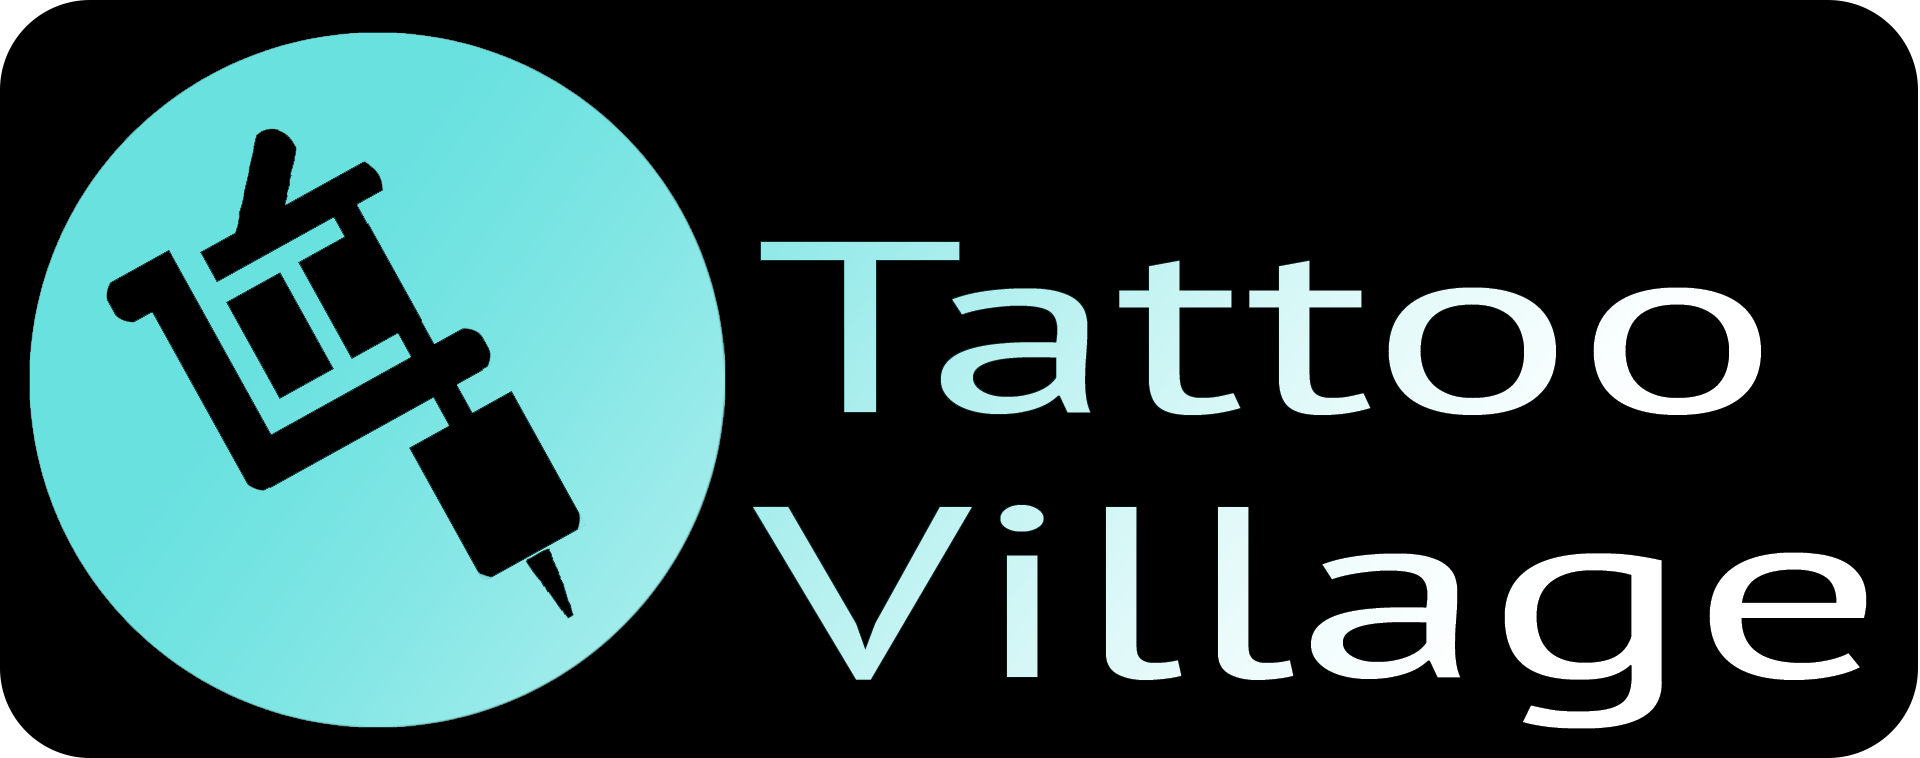 Tattoo-Village